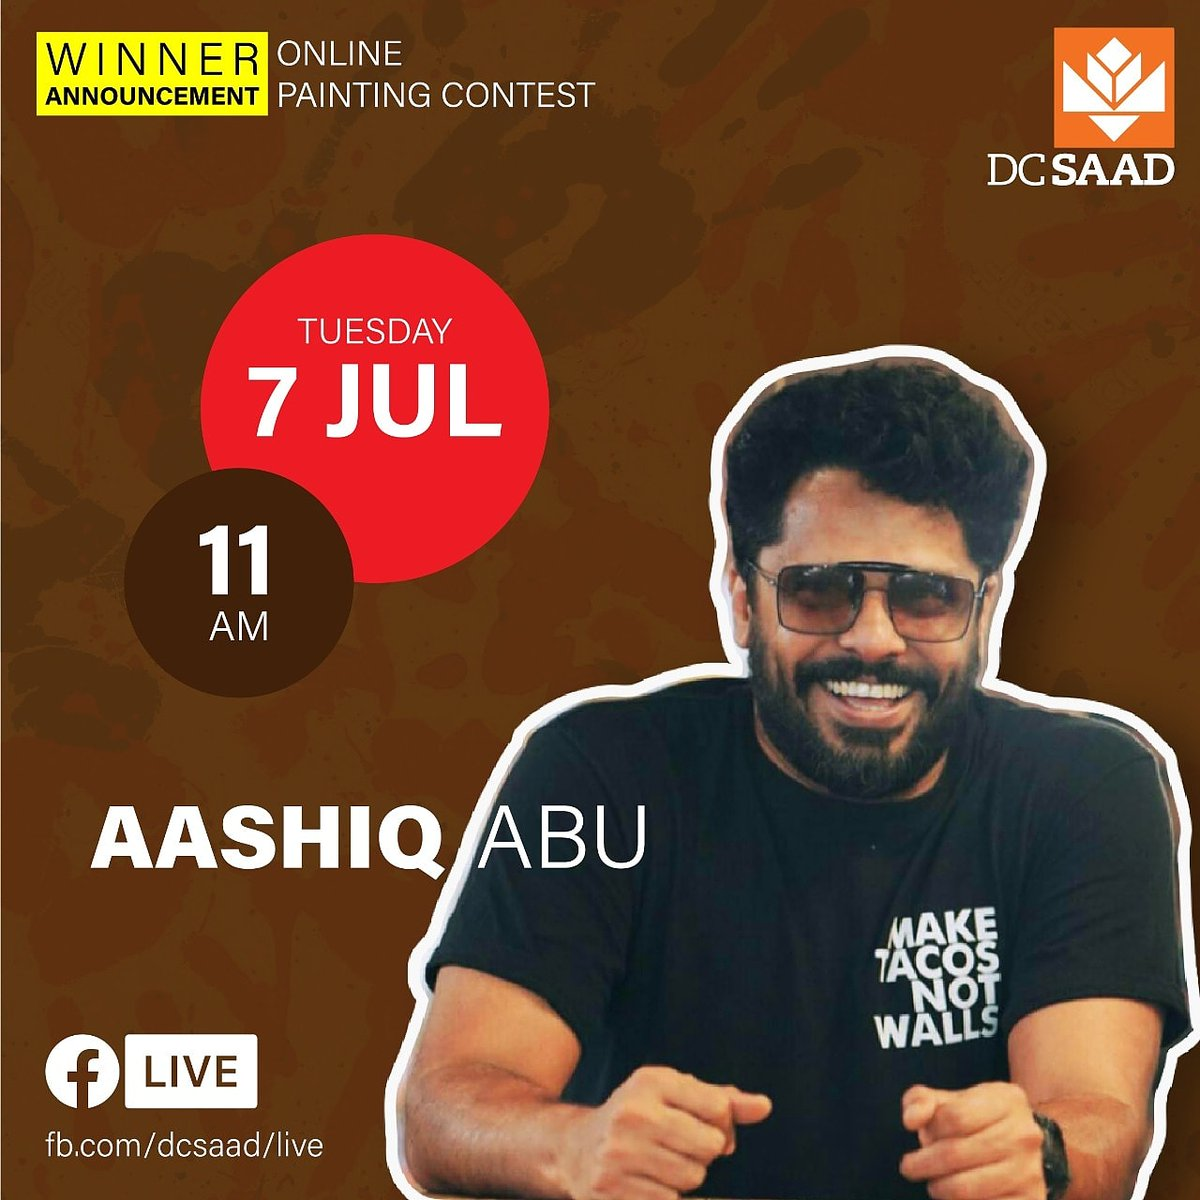 We are excited to have renowned film-maker *Aashiq Abu* to announce the winners for the ONLINE PAINTING CONTEST.  Follow our Page: https://t.co/XcSXbFv4Bx  #dcsmat #dcsaad #dcschool #aashiqabu #movies #mollywood #contest #painting #barch #interiordesign #malayalam #keralaart #art https://t.co/xut2B3LUAy